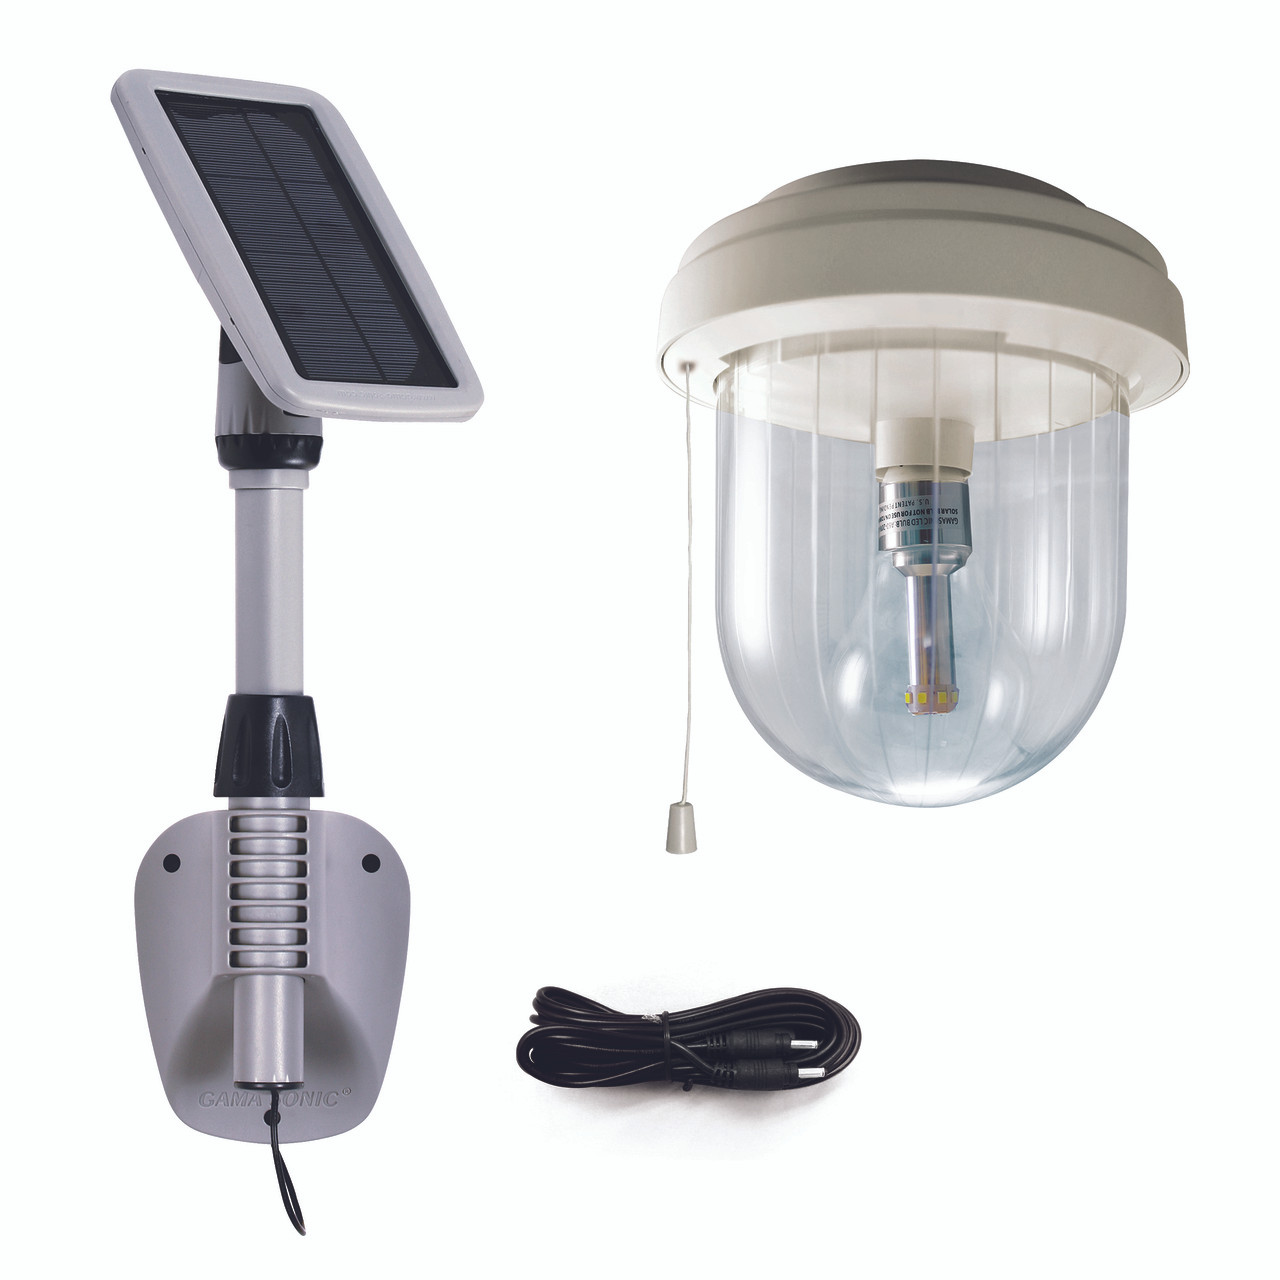 Solar Shed Light With Switch: Gama Sonic 250 Lumen Light My